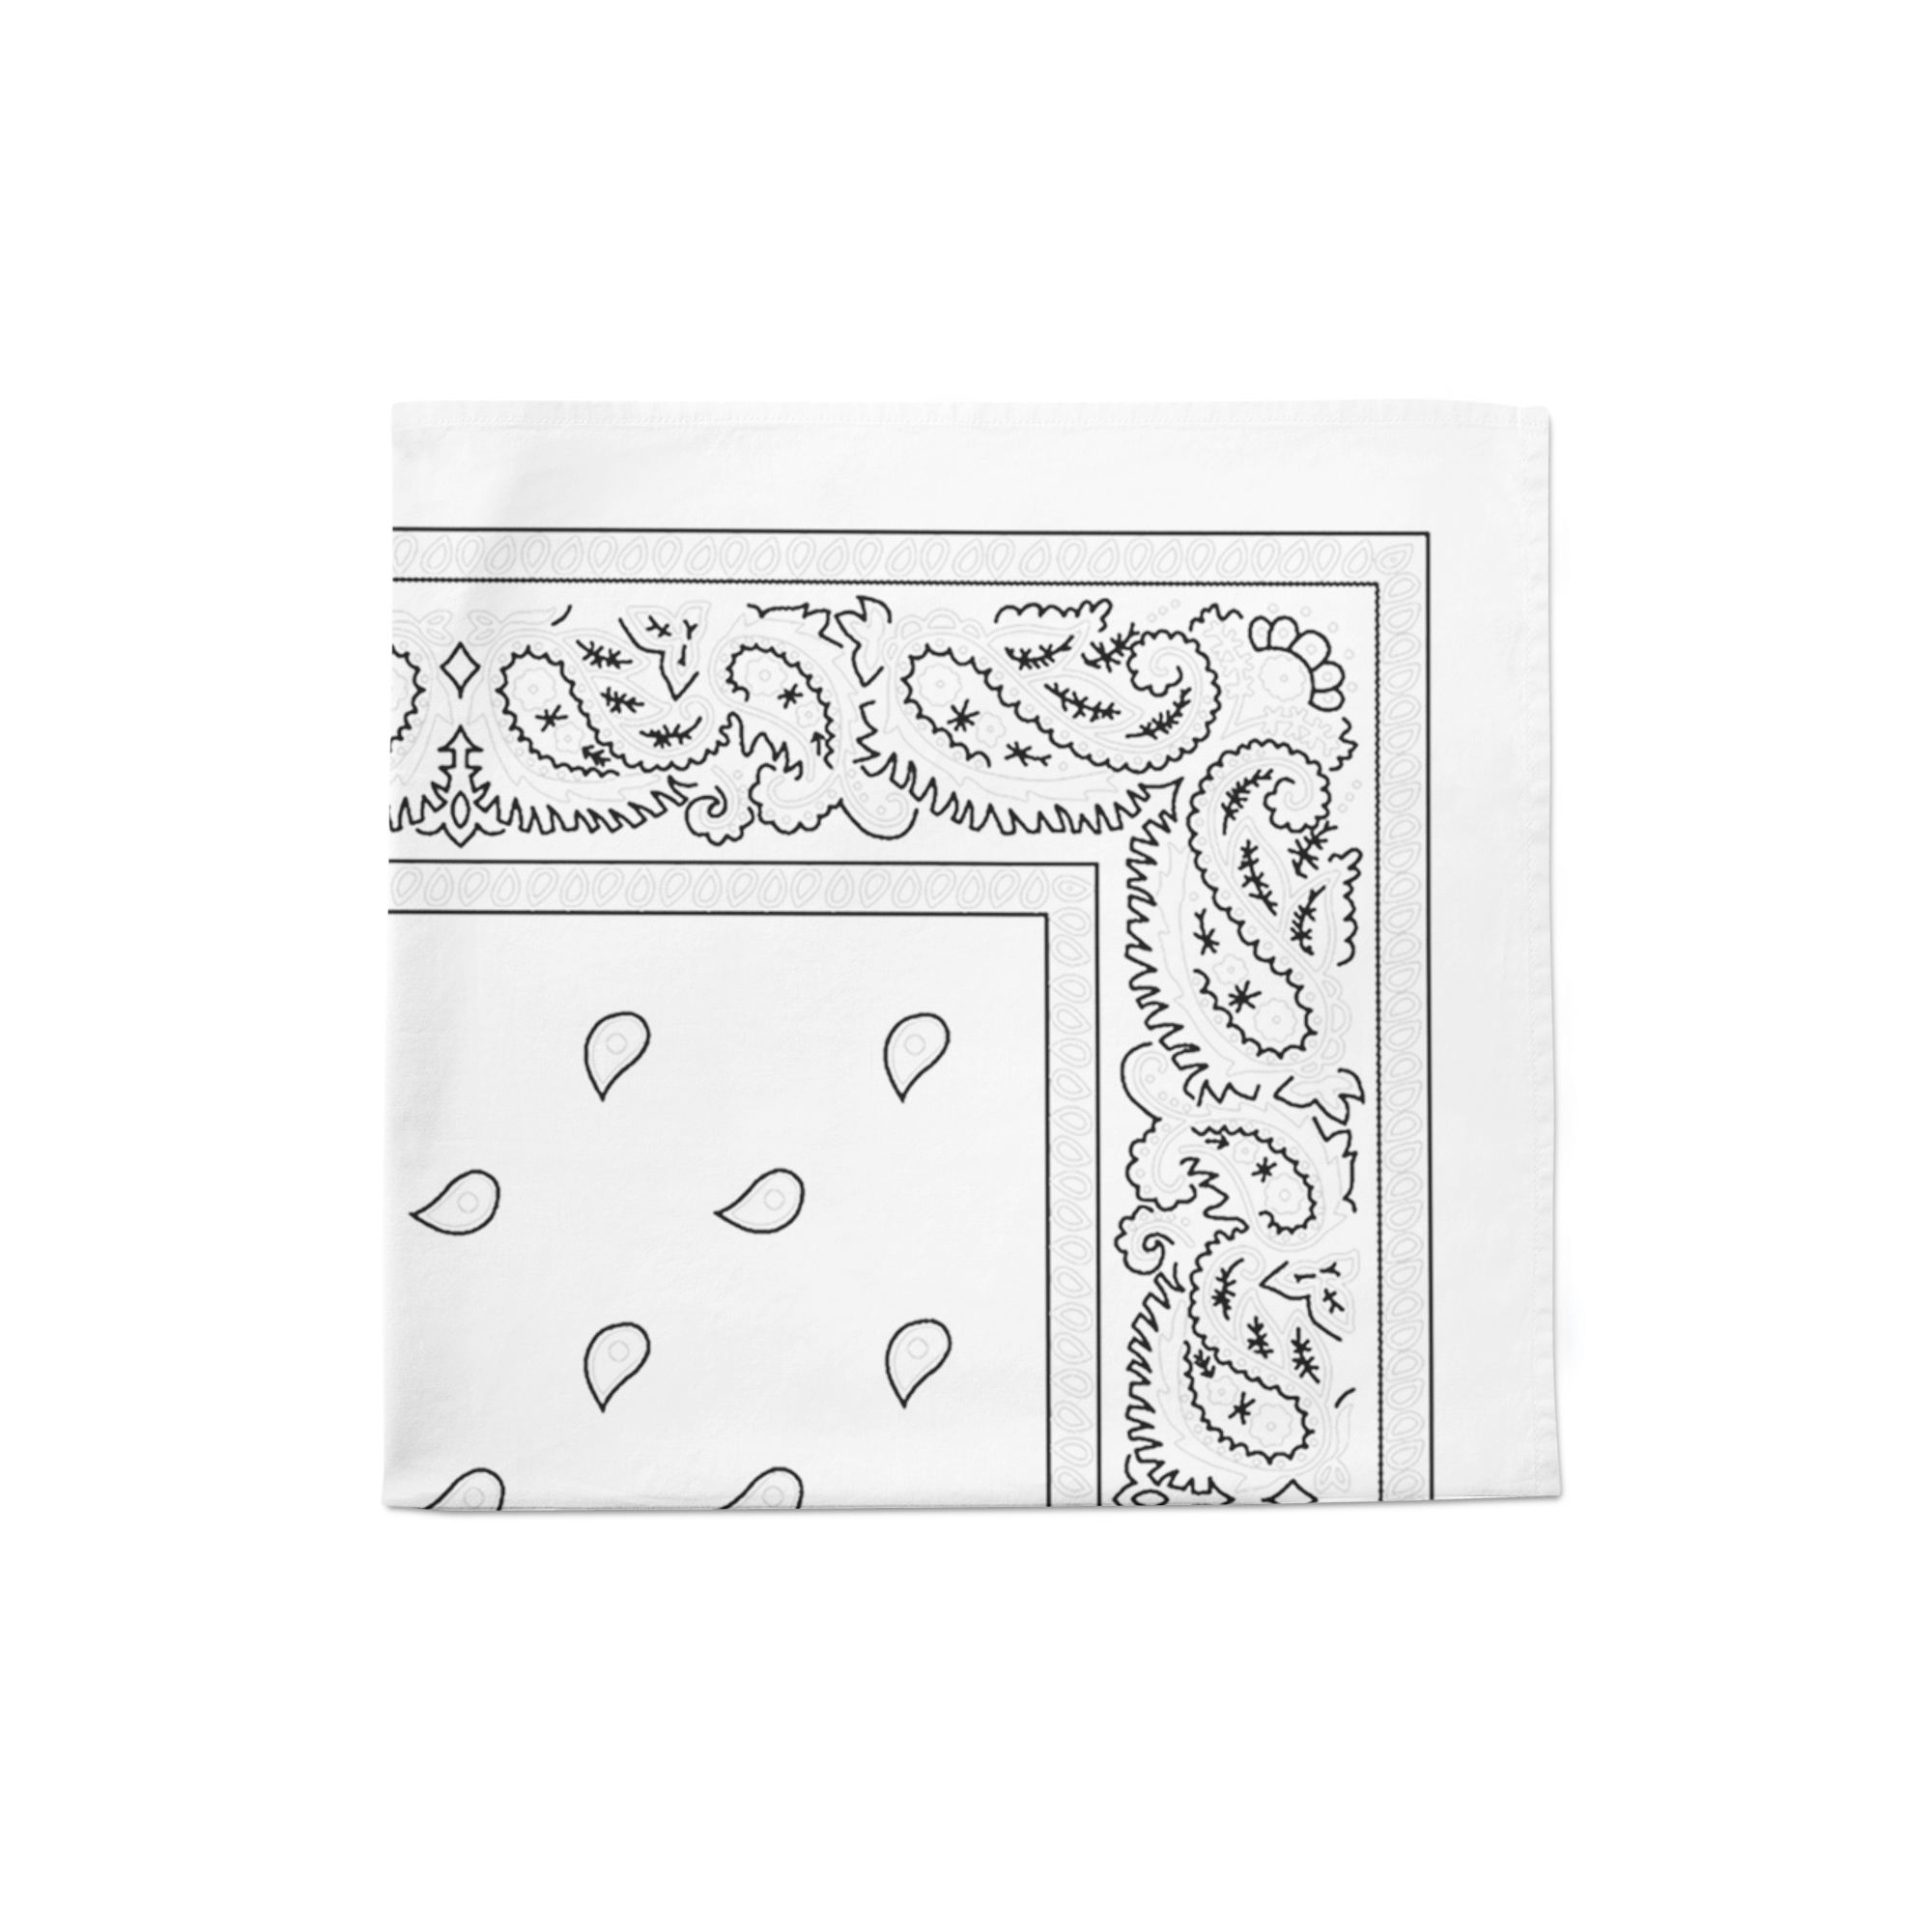 White Paisley Cotton Bandanas 22 inches - Sold in Dozen - Multi Uses: Face Covering, Napkins, Handkerchief, Scarf, Promotion